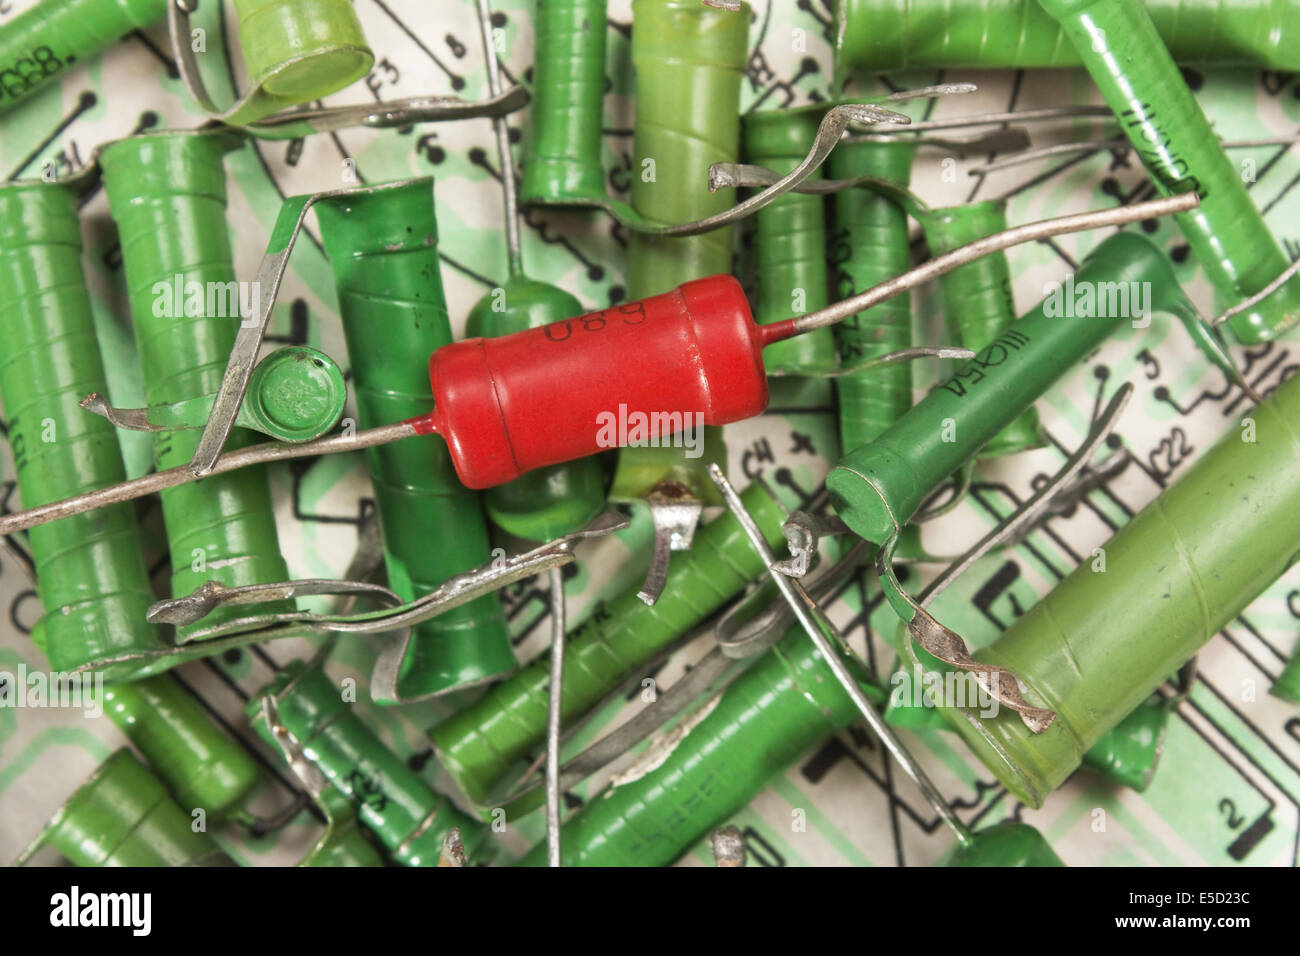 Old Electronic Components Stock Photos Electron Tube Industrial Wiring Diagram Lie On The Image